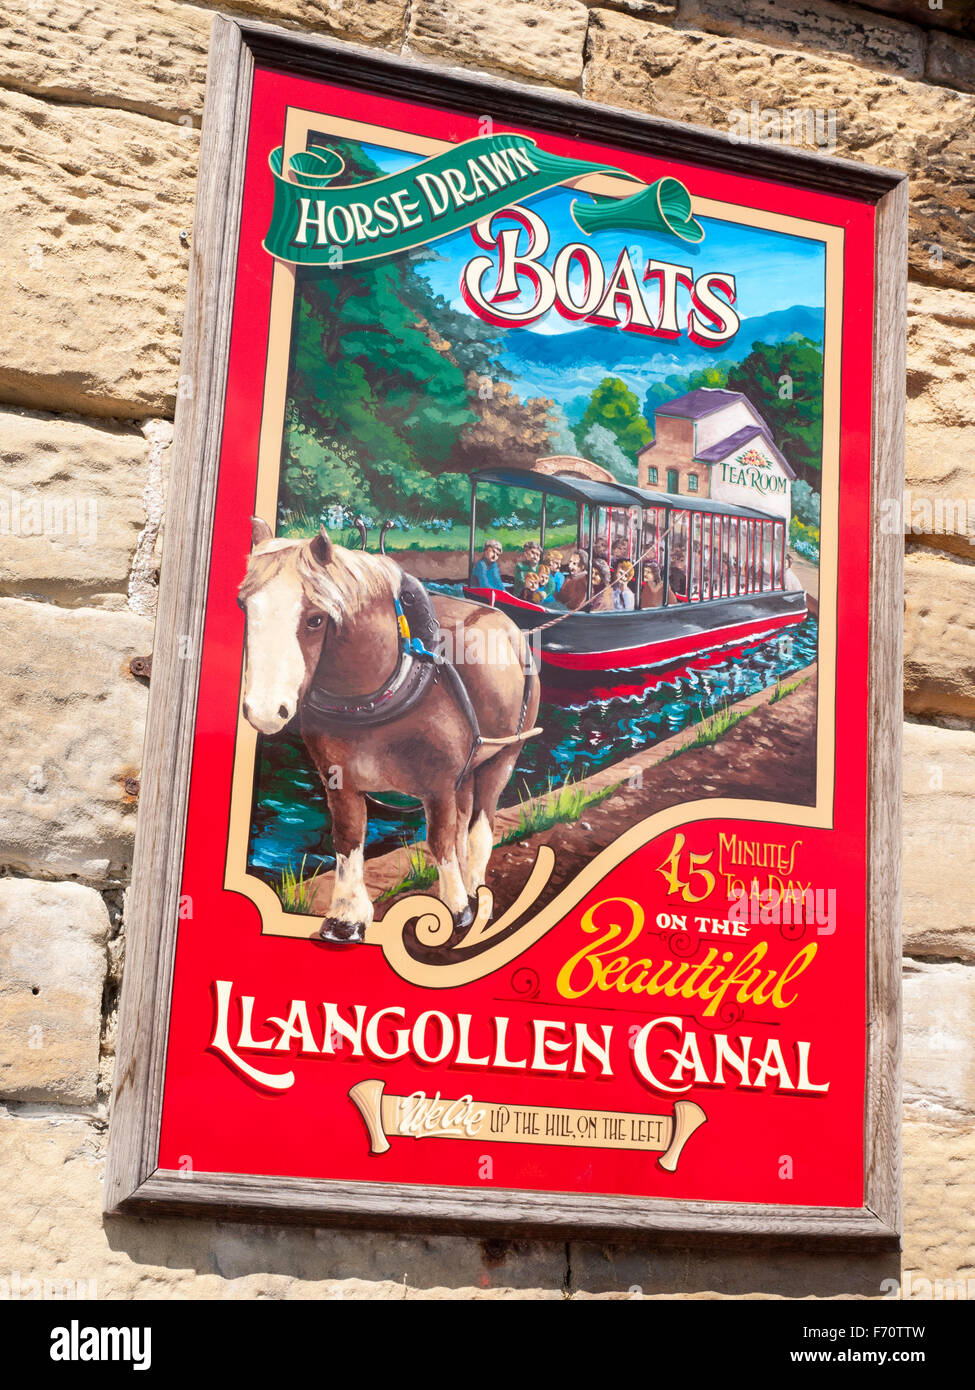 Advertising sign for horse drawn boats in Llangollen Wales UK Stock Photo